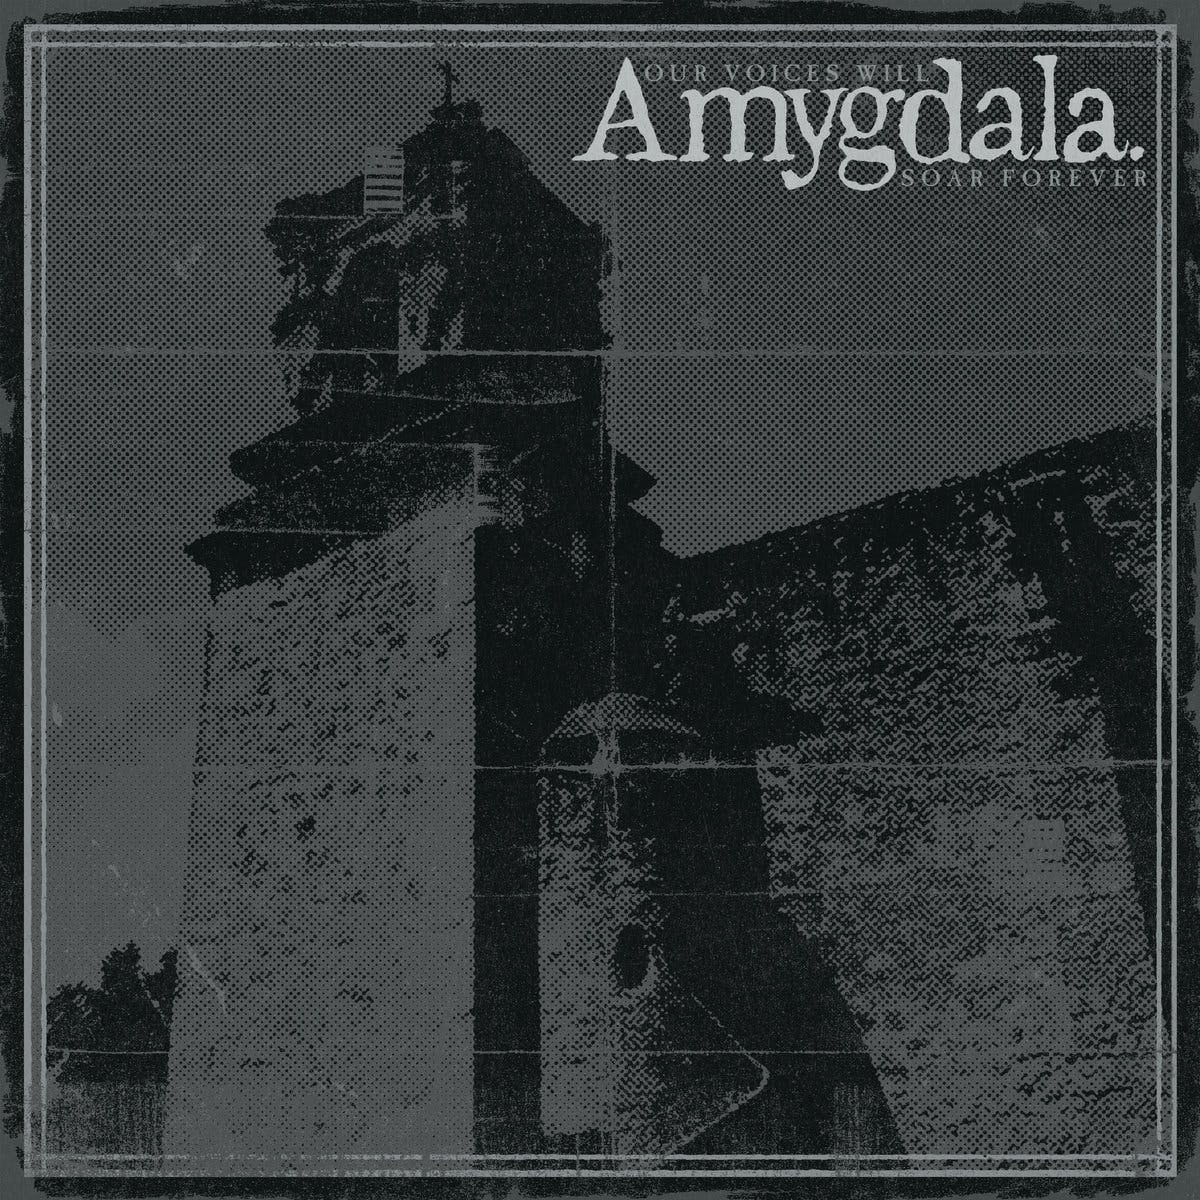 Amygdala Our Voices Will Soar Forever